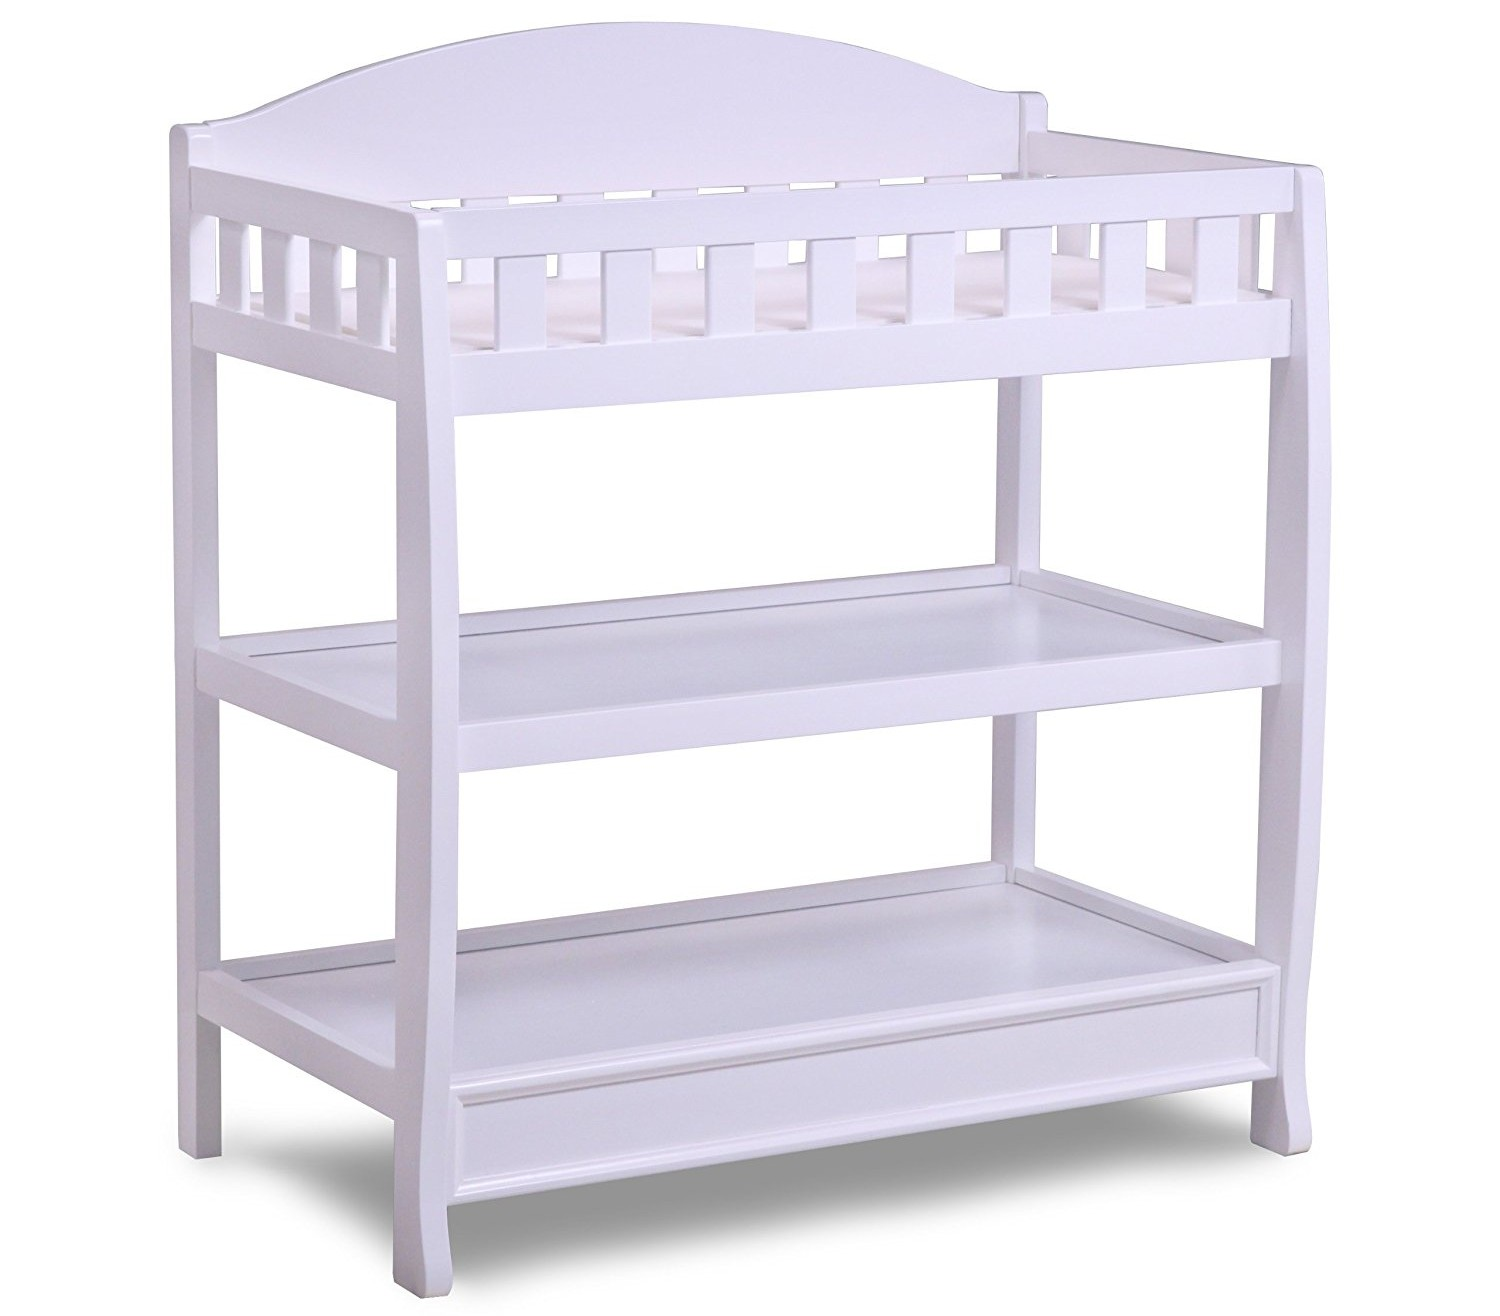 Baby Wickeltisch The 8 Best Baby Changing Tables To Buy In 2018 Bestseekers